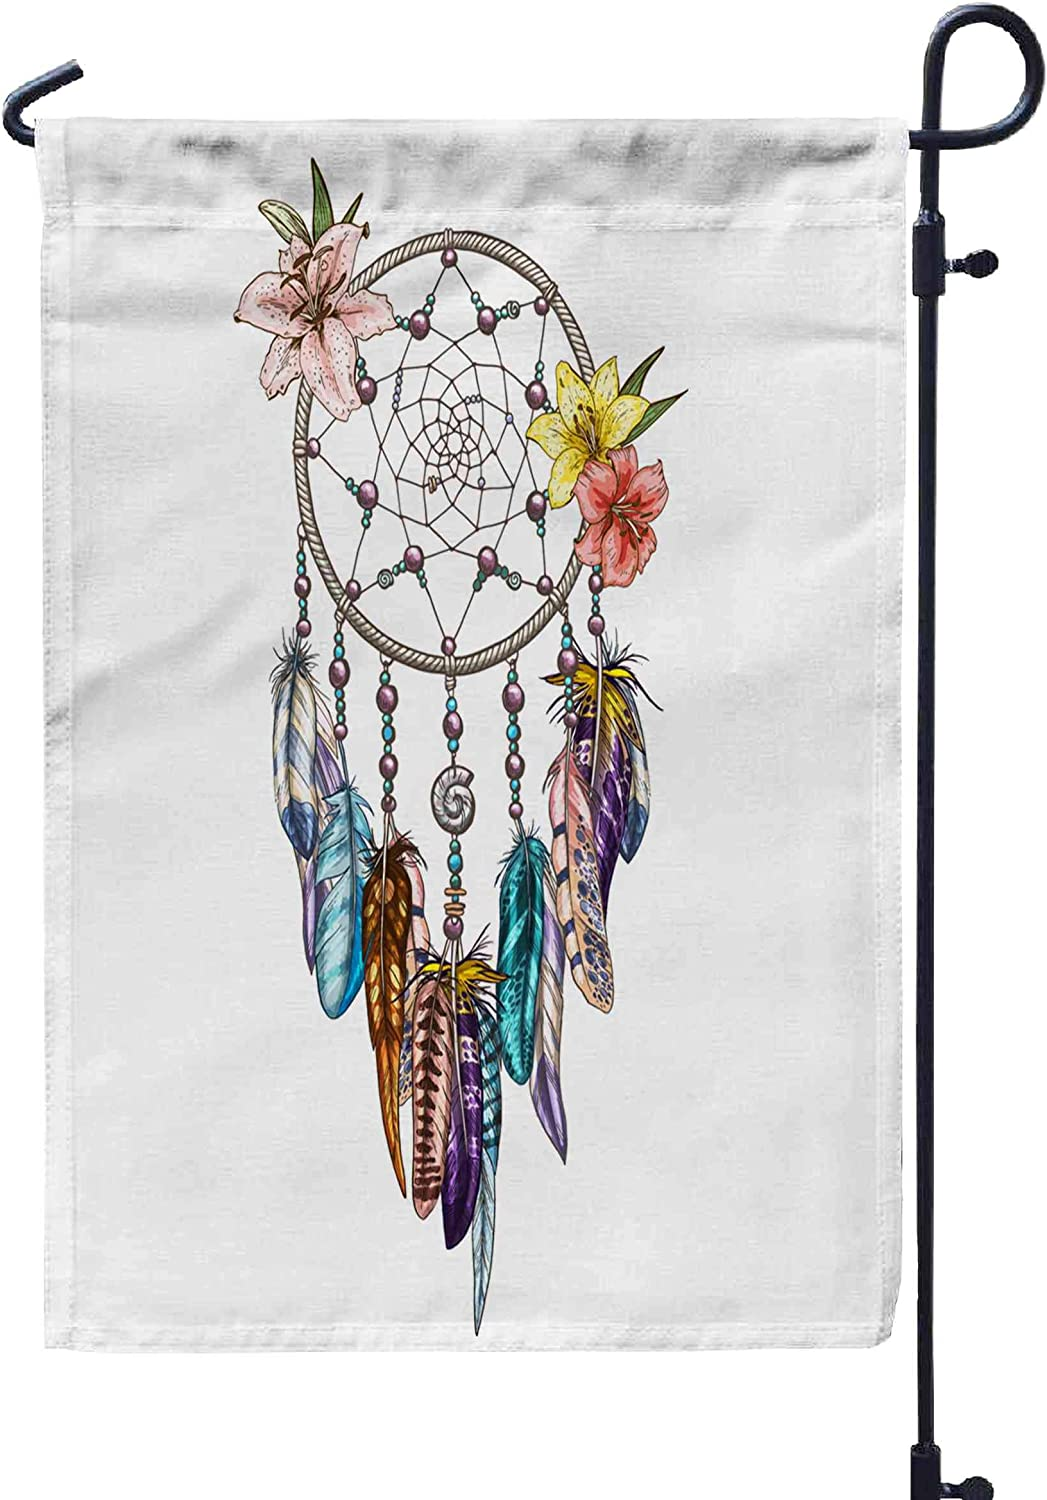 GROOTEY Welcome Outdoor Garden Flag Home Yard Decorative 12X18 Inches Native Symbol Dream Catcher Lilies Color Feather Double Sided Seasonal Garden Flags